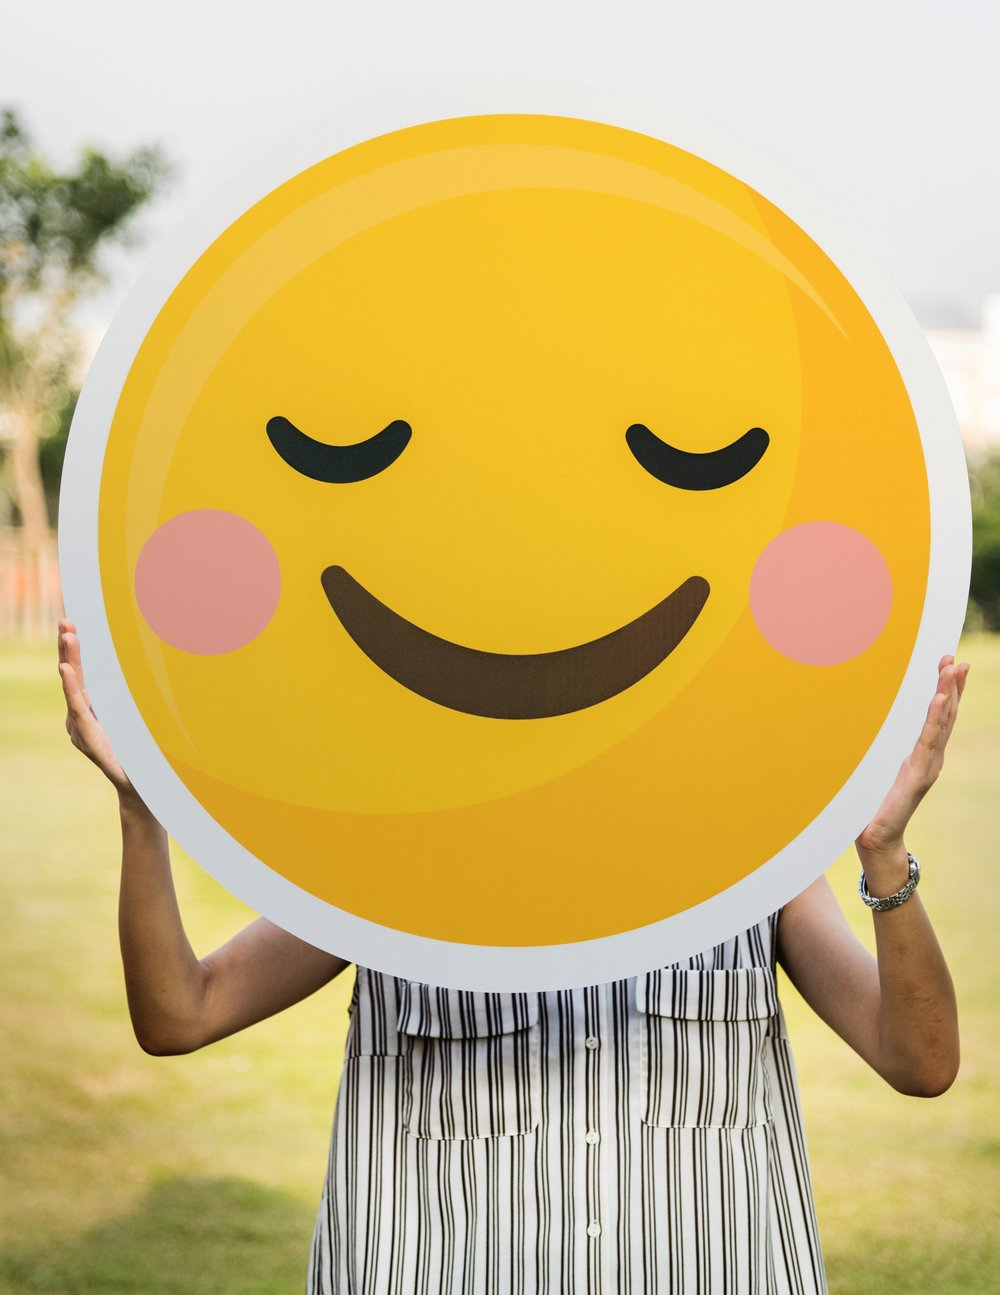 Photo of person holding up smiley face by  rawpixel  on  Unsplash